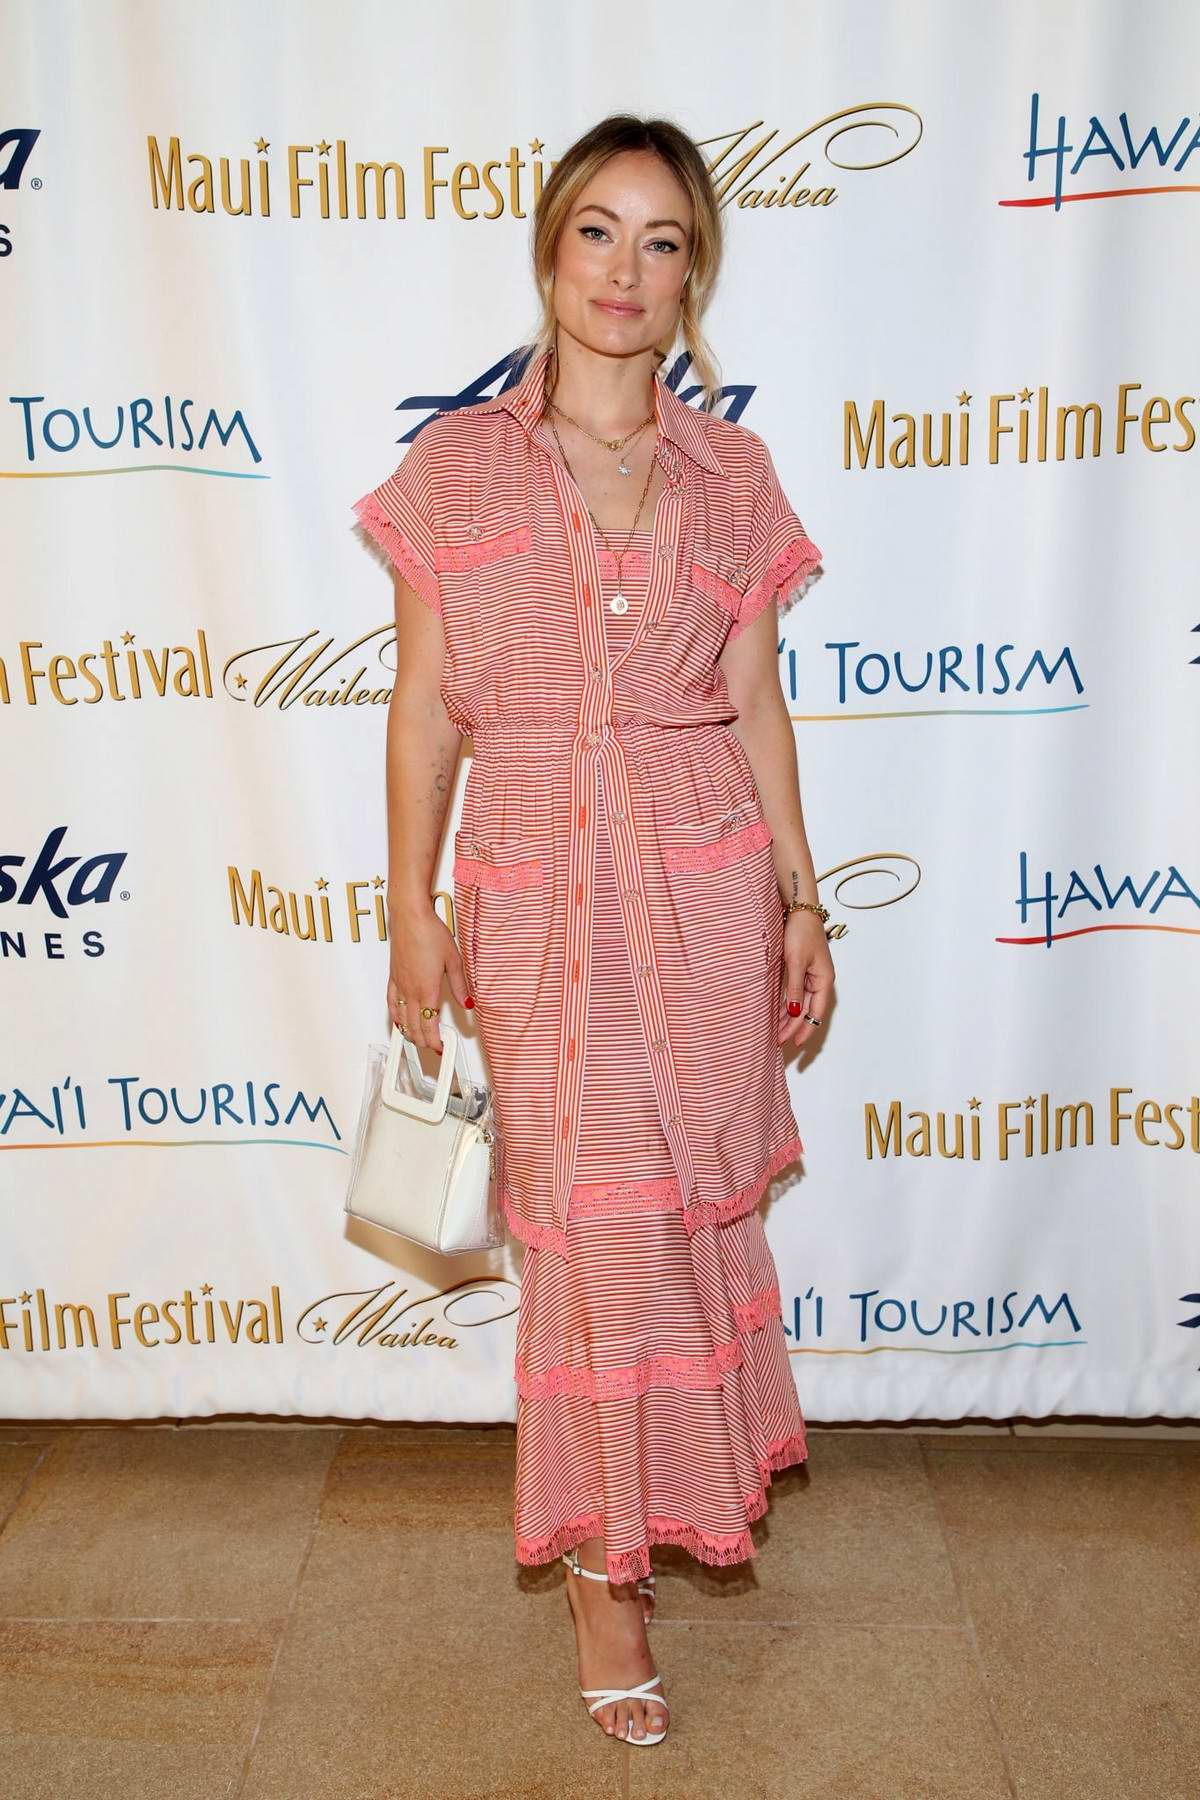 Olivia Wilde attends the 2019 Maui Film Festival - Day 5 in Wailea, Hawaii